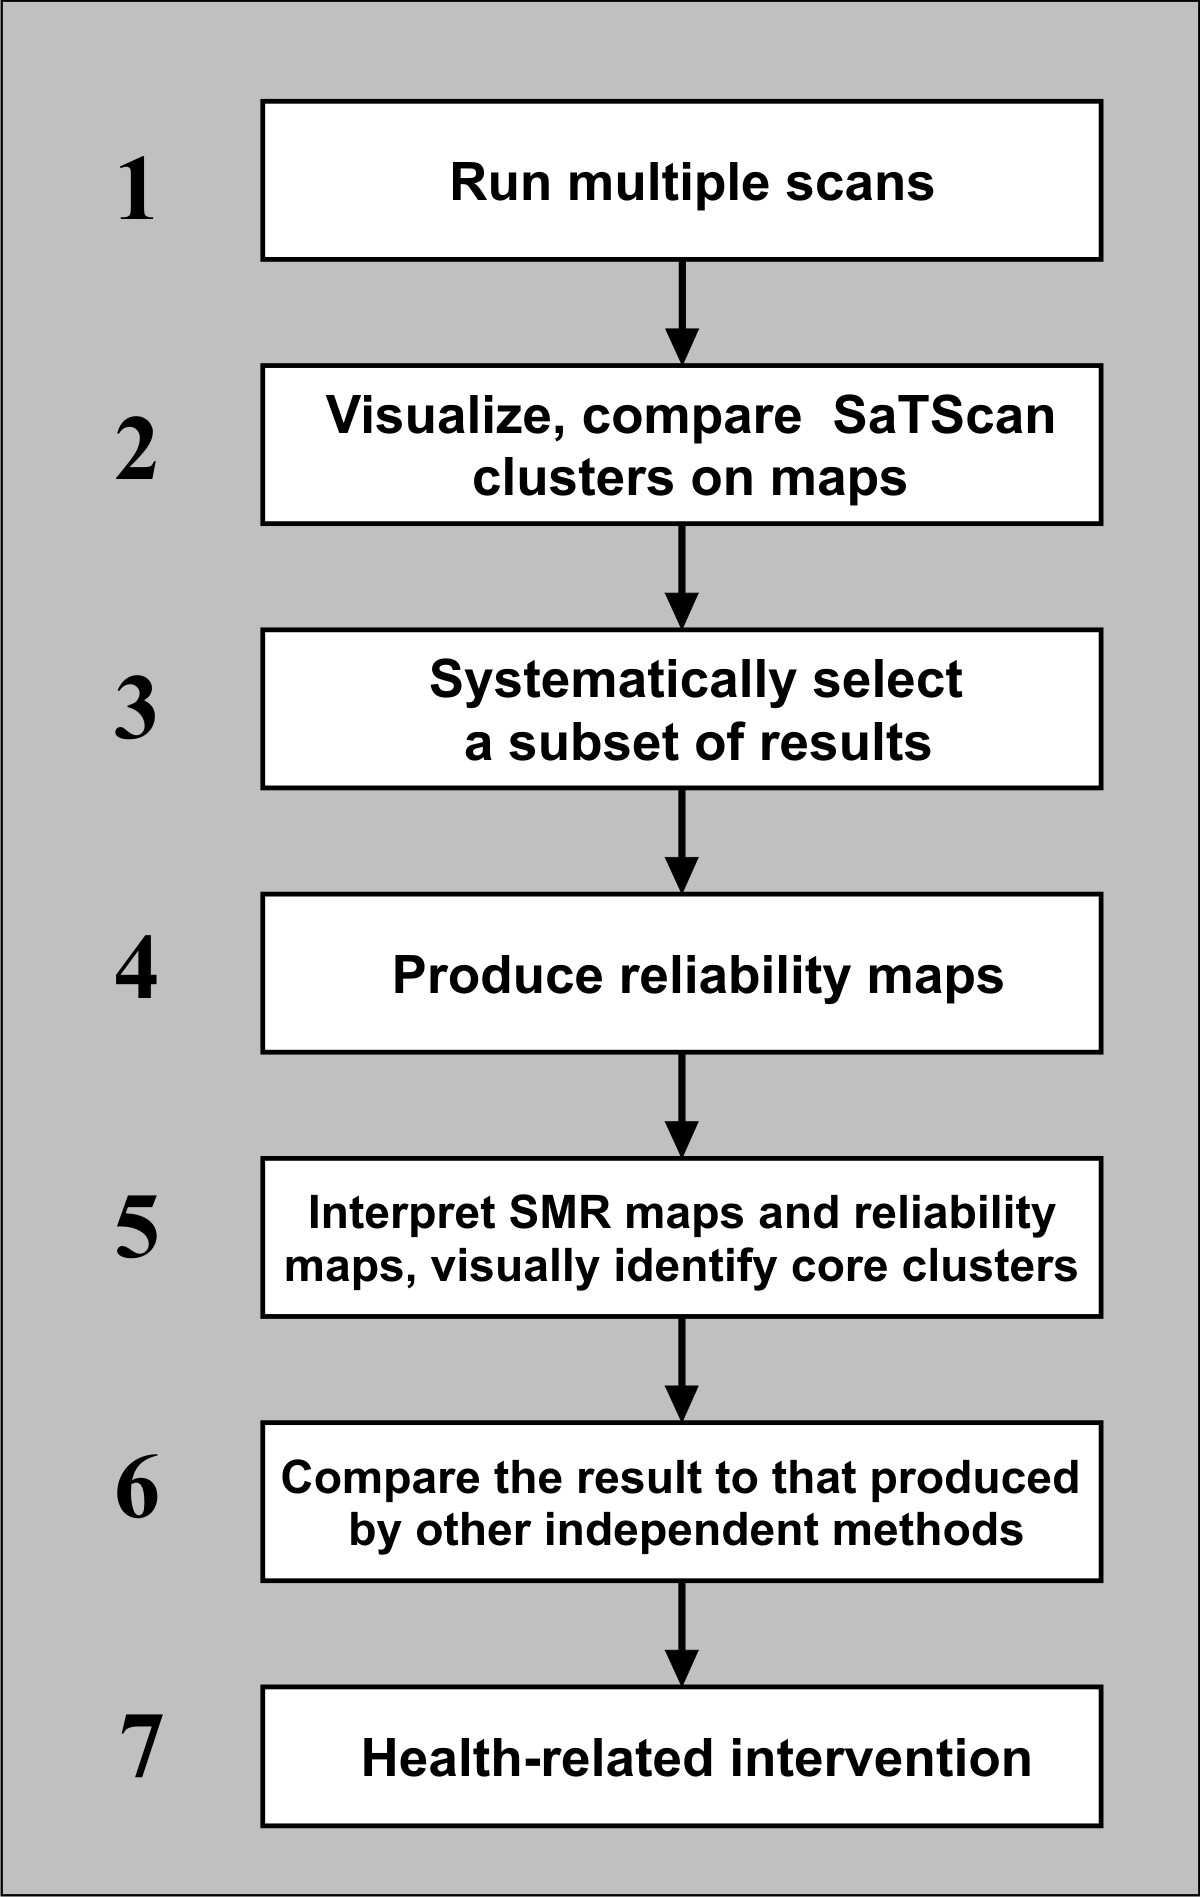 http://static-content.springer.com/image/art%3A10.1186%2F1476-072X-7-57/MediaObjects/12942_2008_Article_251_Fig9_HTML.jpg